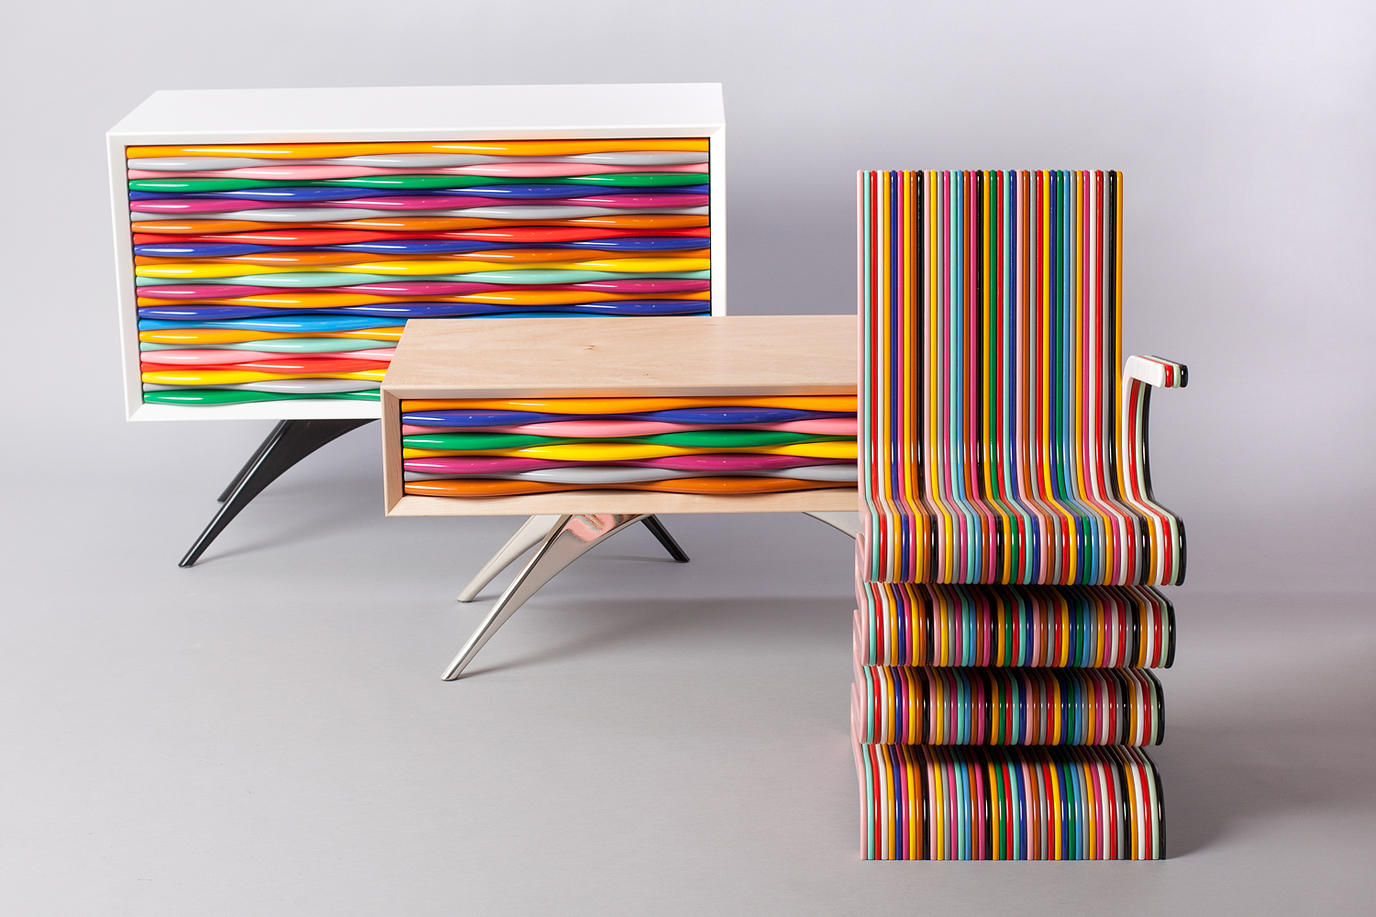 Design pop mobili multicolor di anthony hartley thesignofcolor - Imitazioni mobili design ...